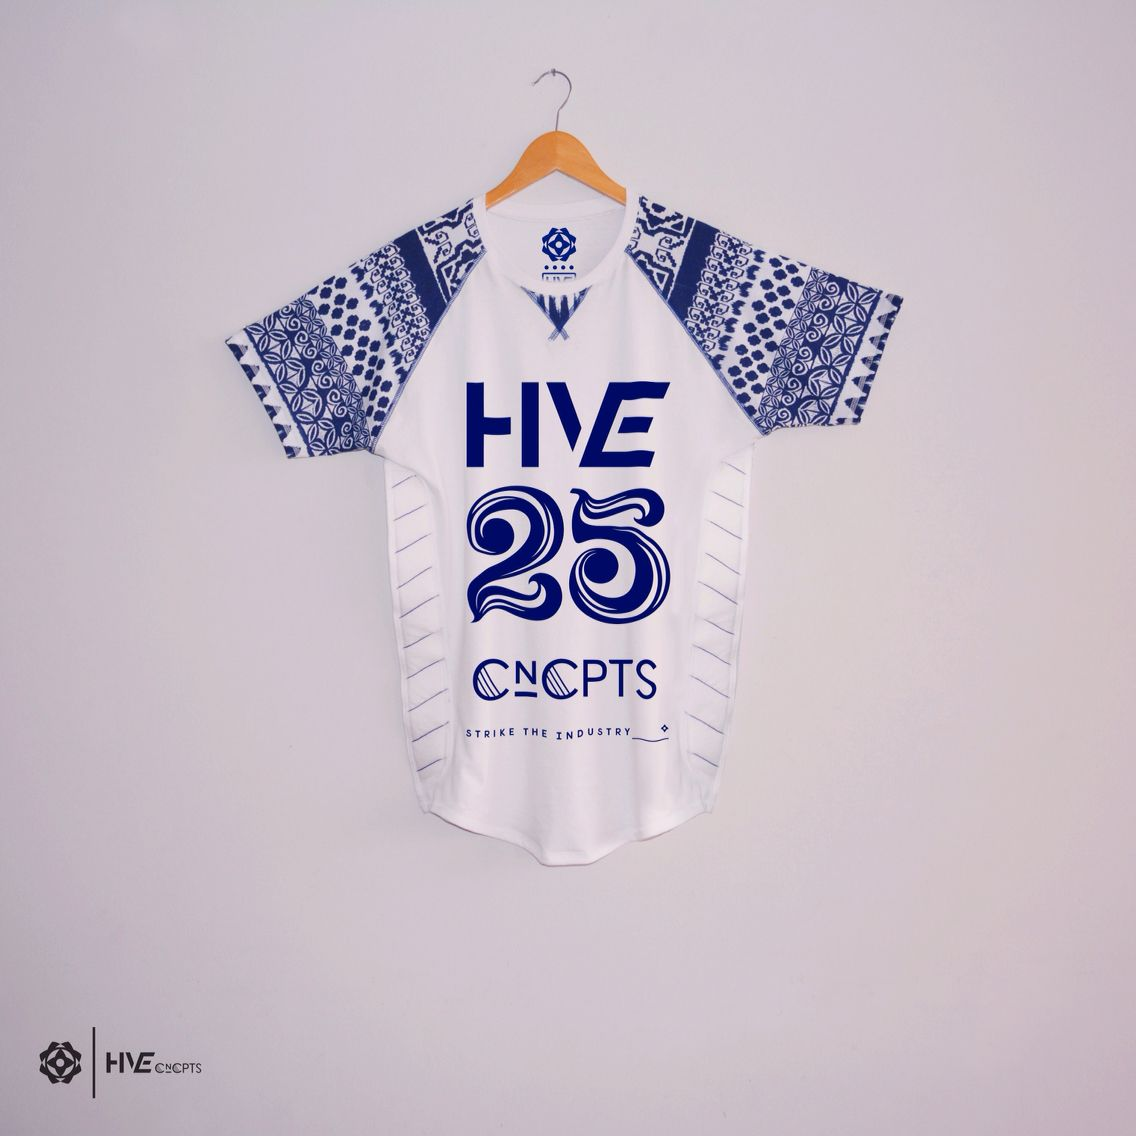 Absolutely Dope! Extended baseball tee by the Creative Hive Cncpts Brand.   hive.storenvy.com  Instagram & Twitter  @C_Hive_Concepts